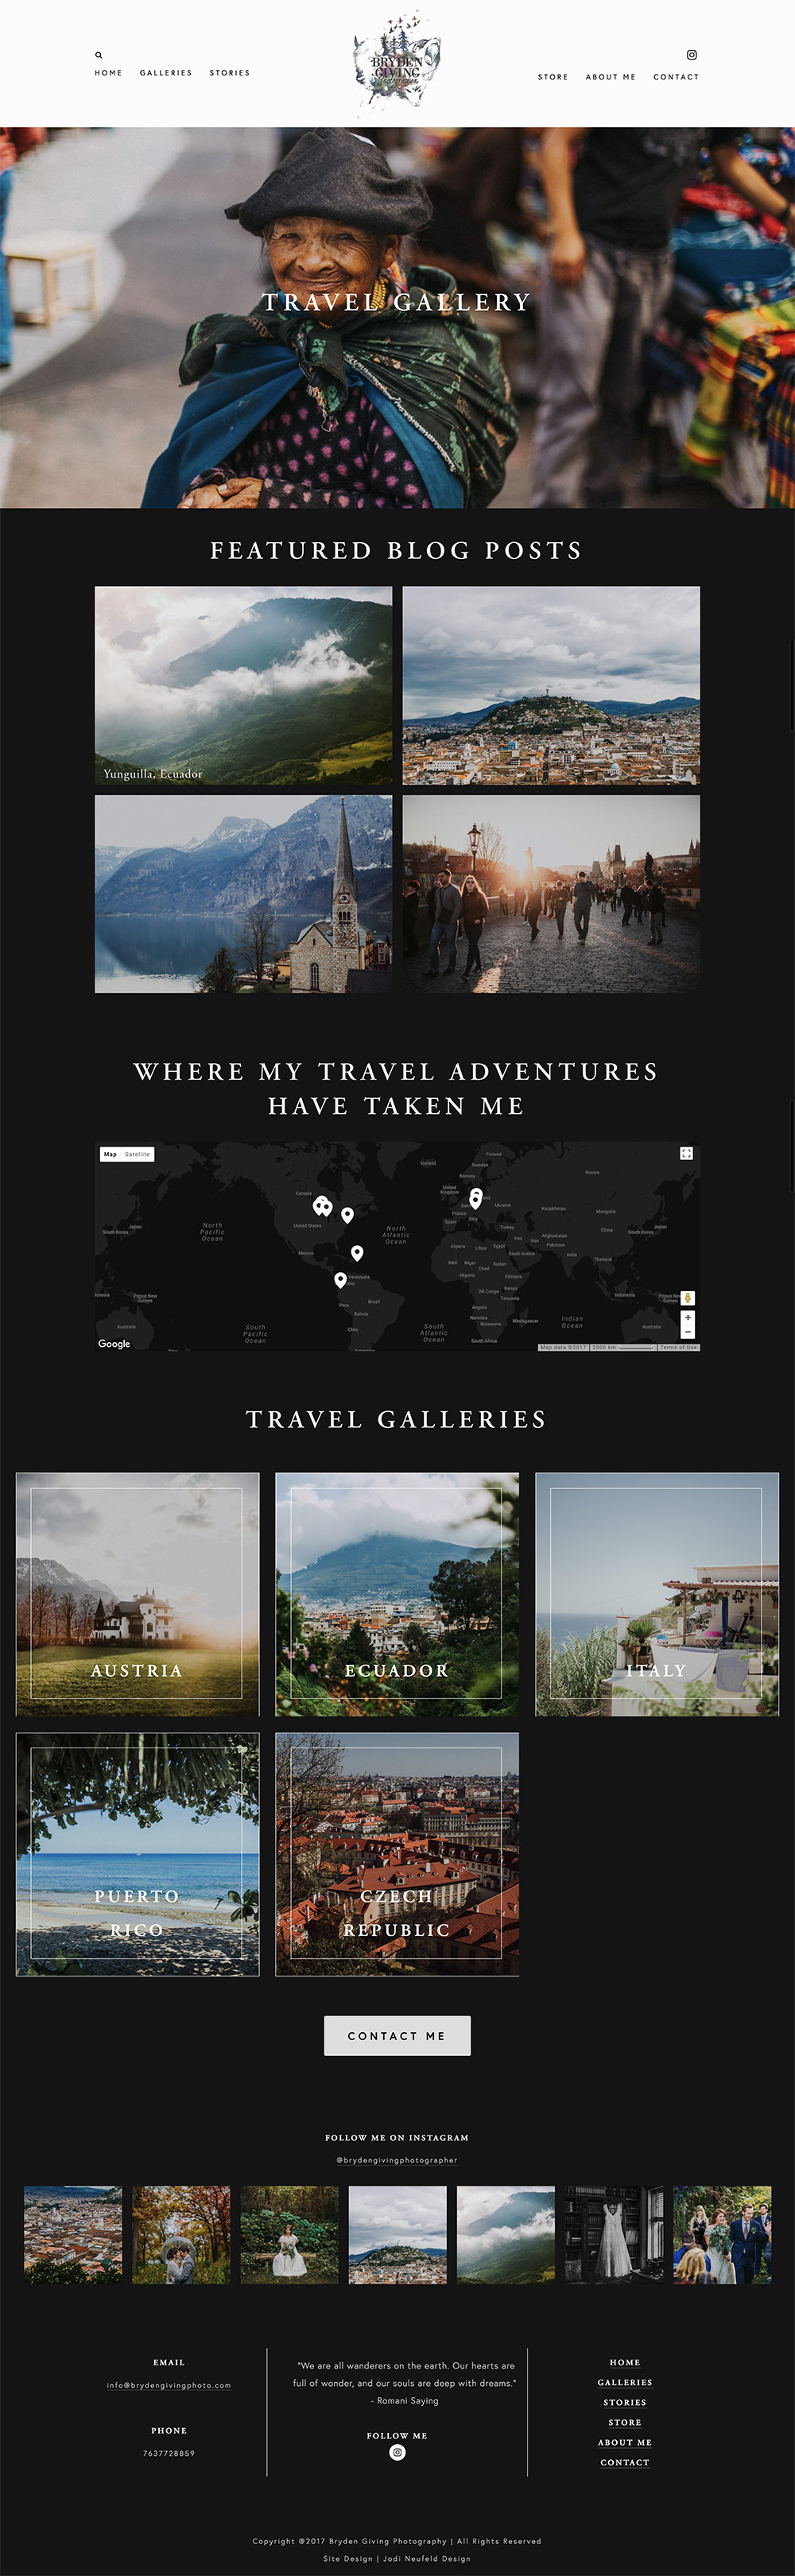 Bryden Giving Photographer Travel Stories page | Squarespace web design by Jodi Neufeld Design